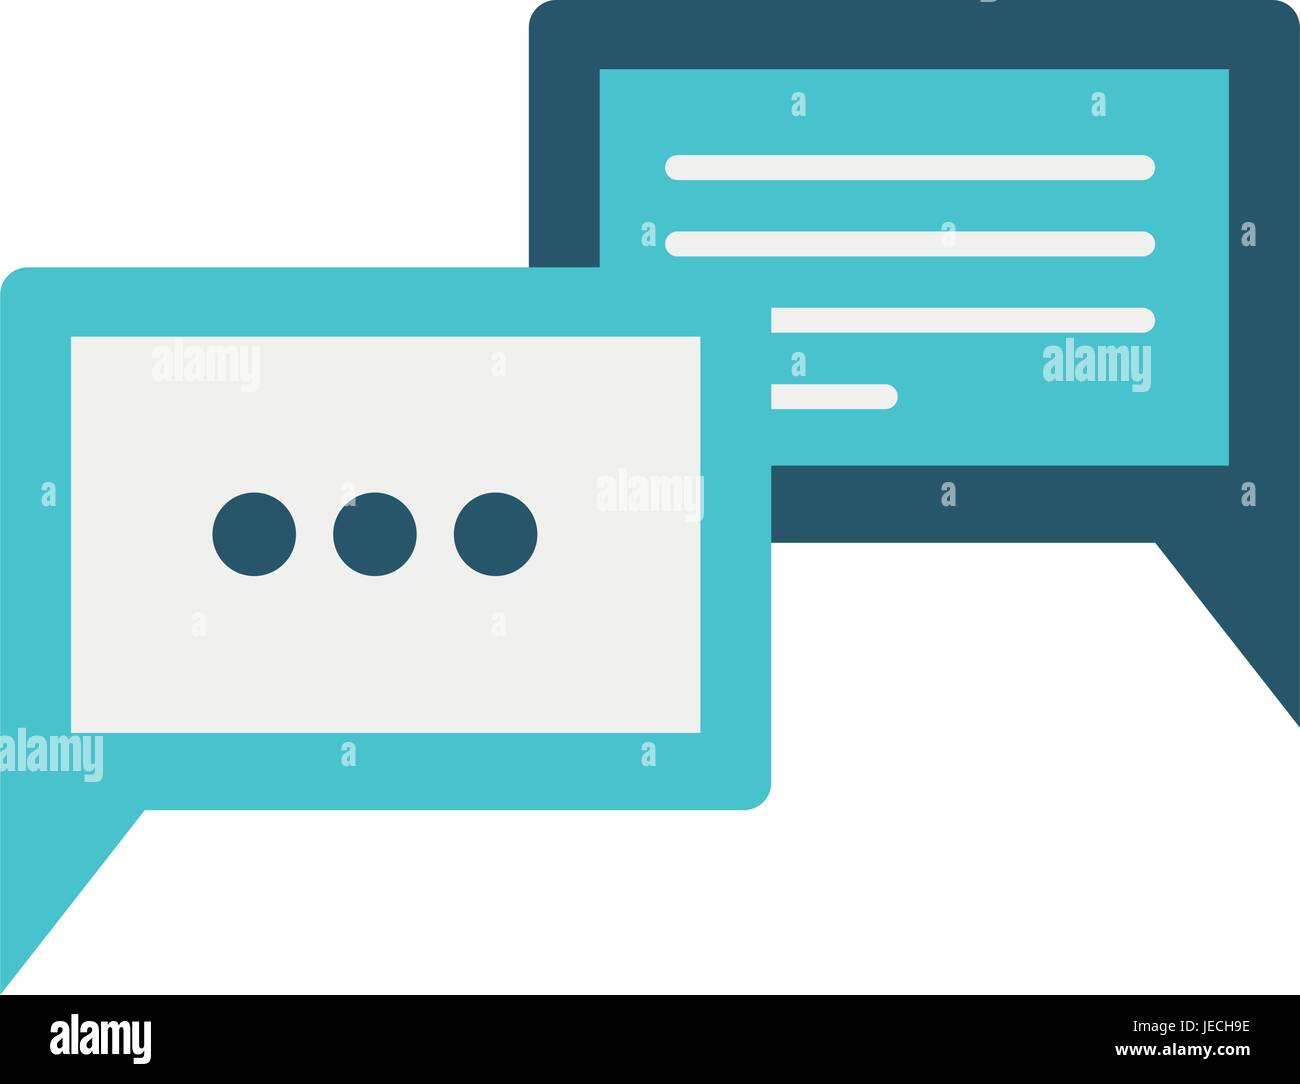 colorful silhouette image of rectangle speech dialogues with suspension points - Stock Image